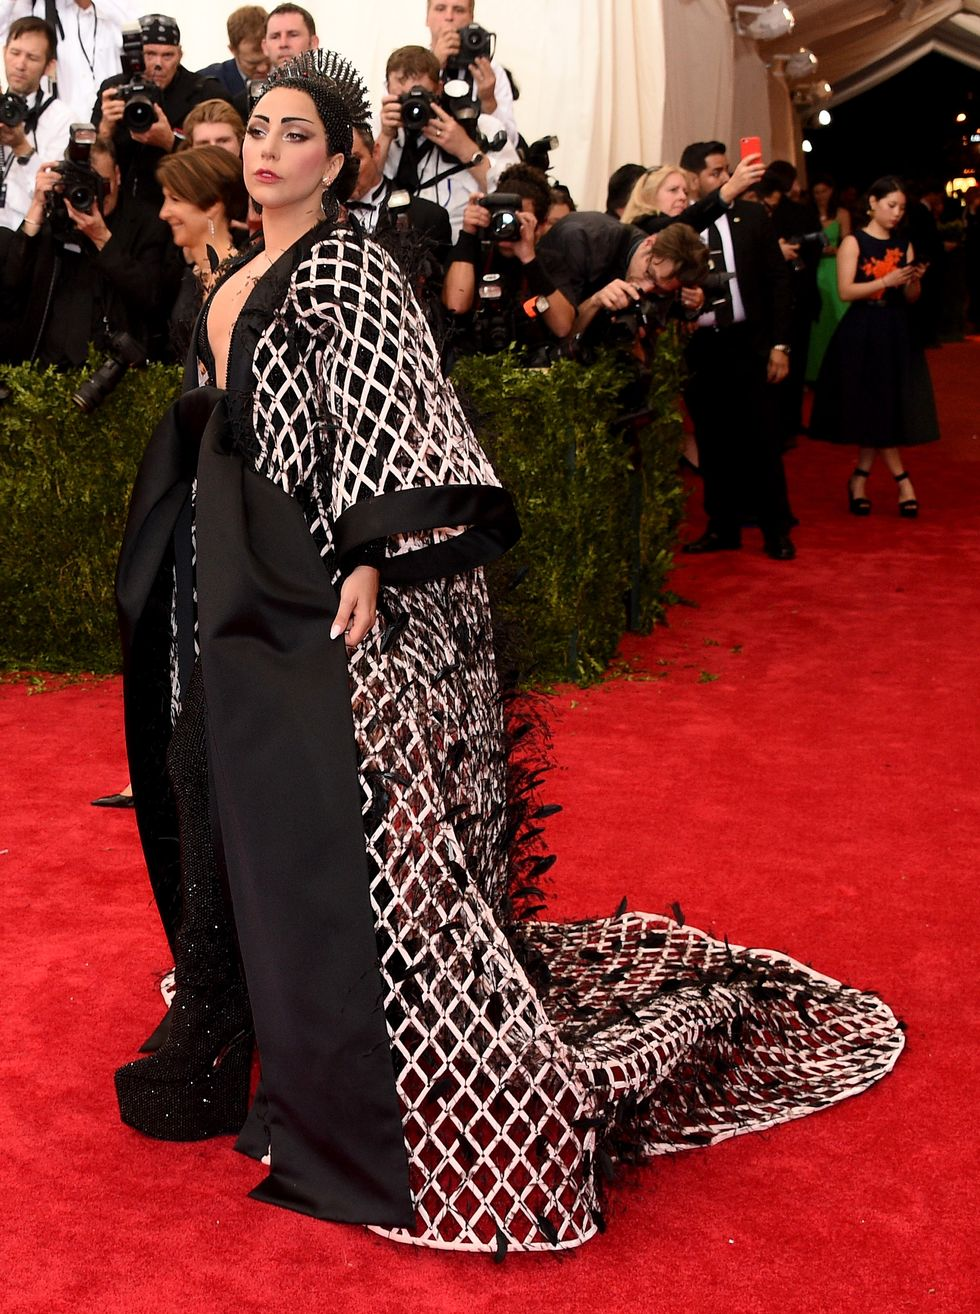 Lady Gaga in Balendiaga at Met Gala 2015